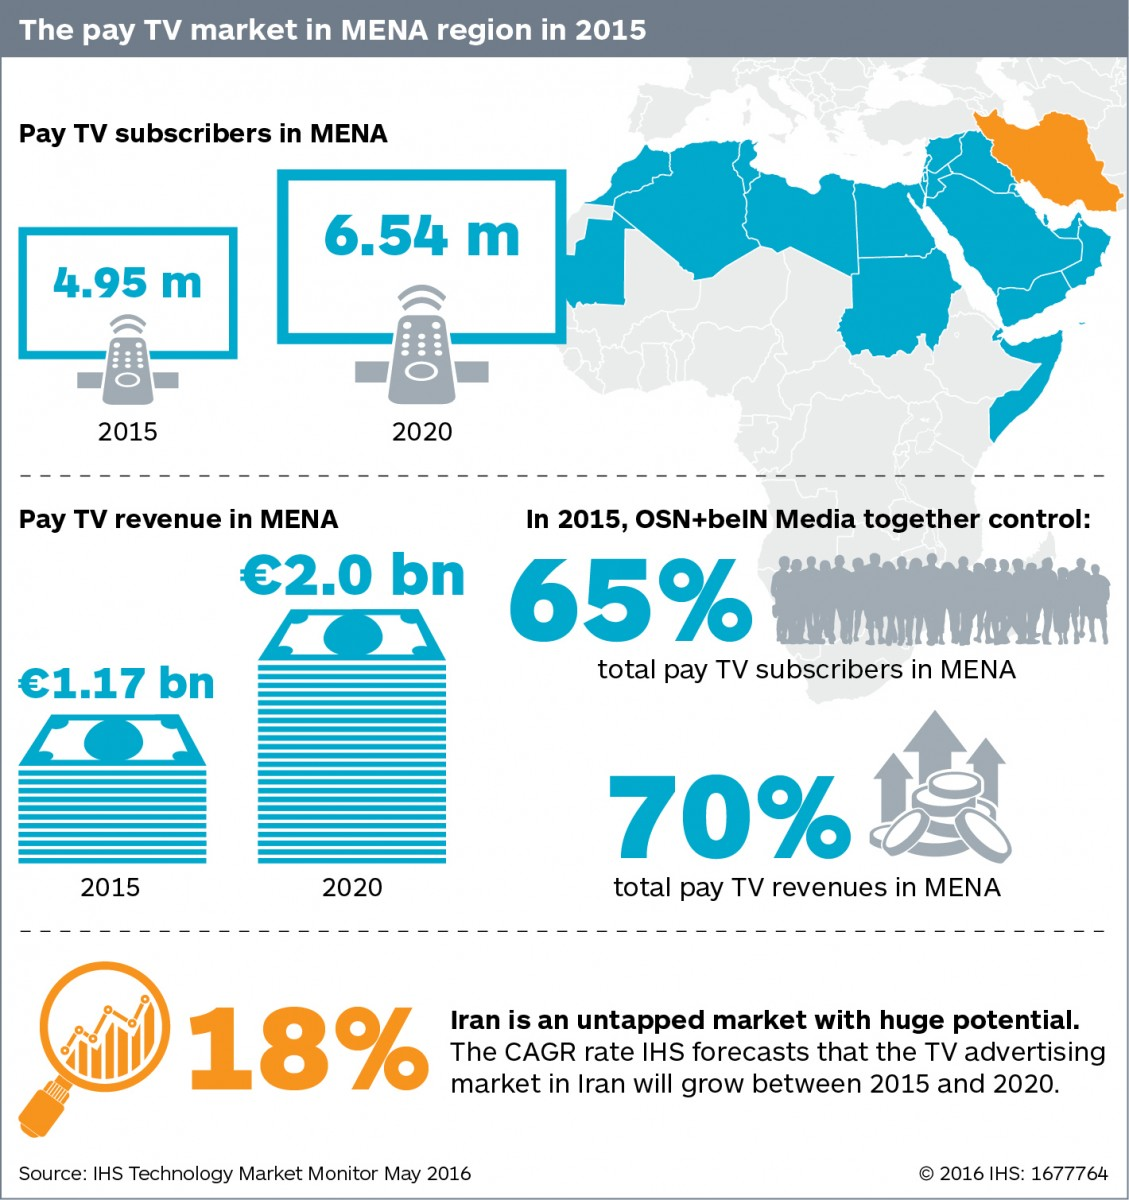 MENA pay TV market